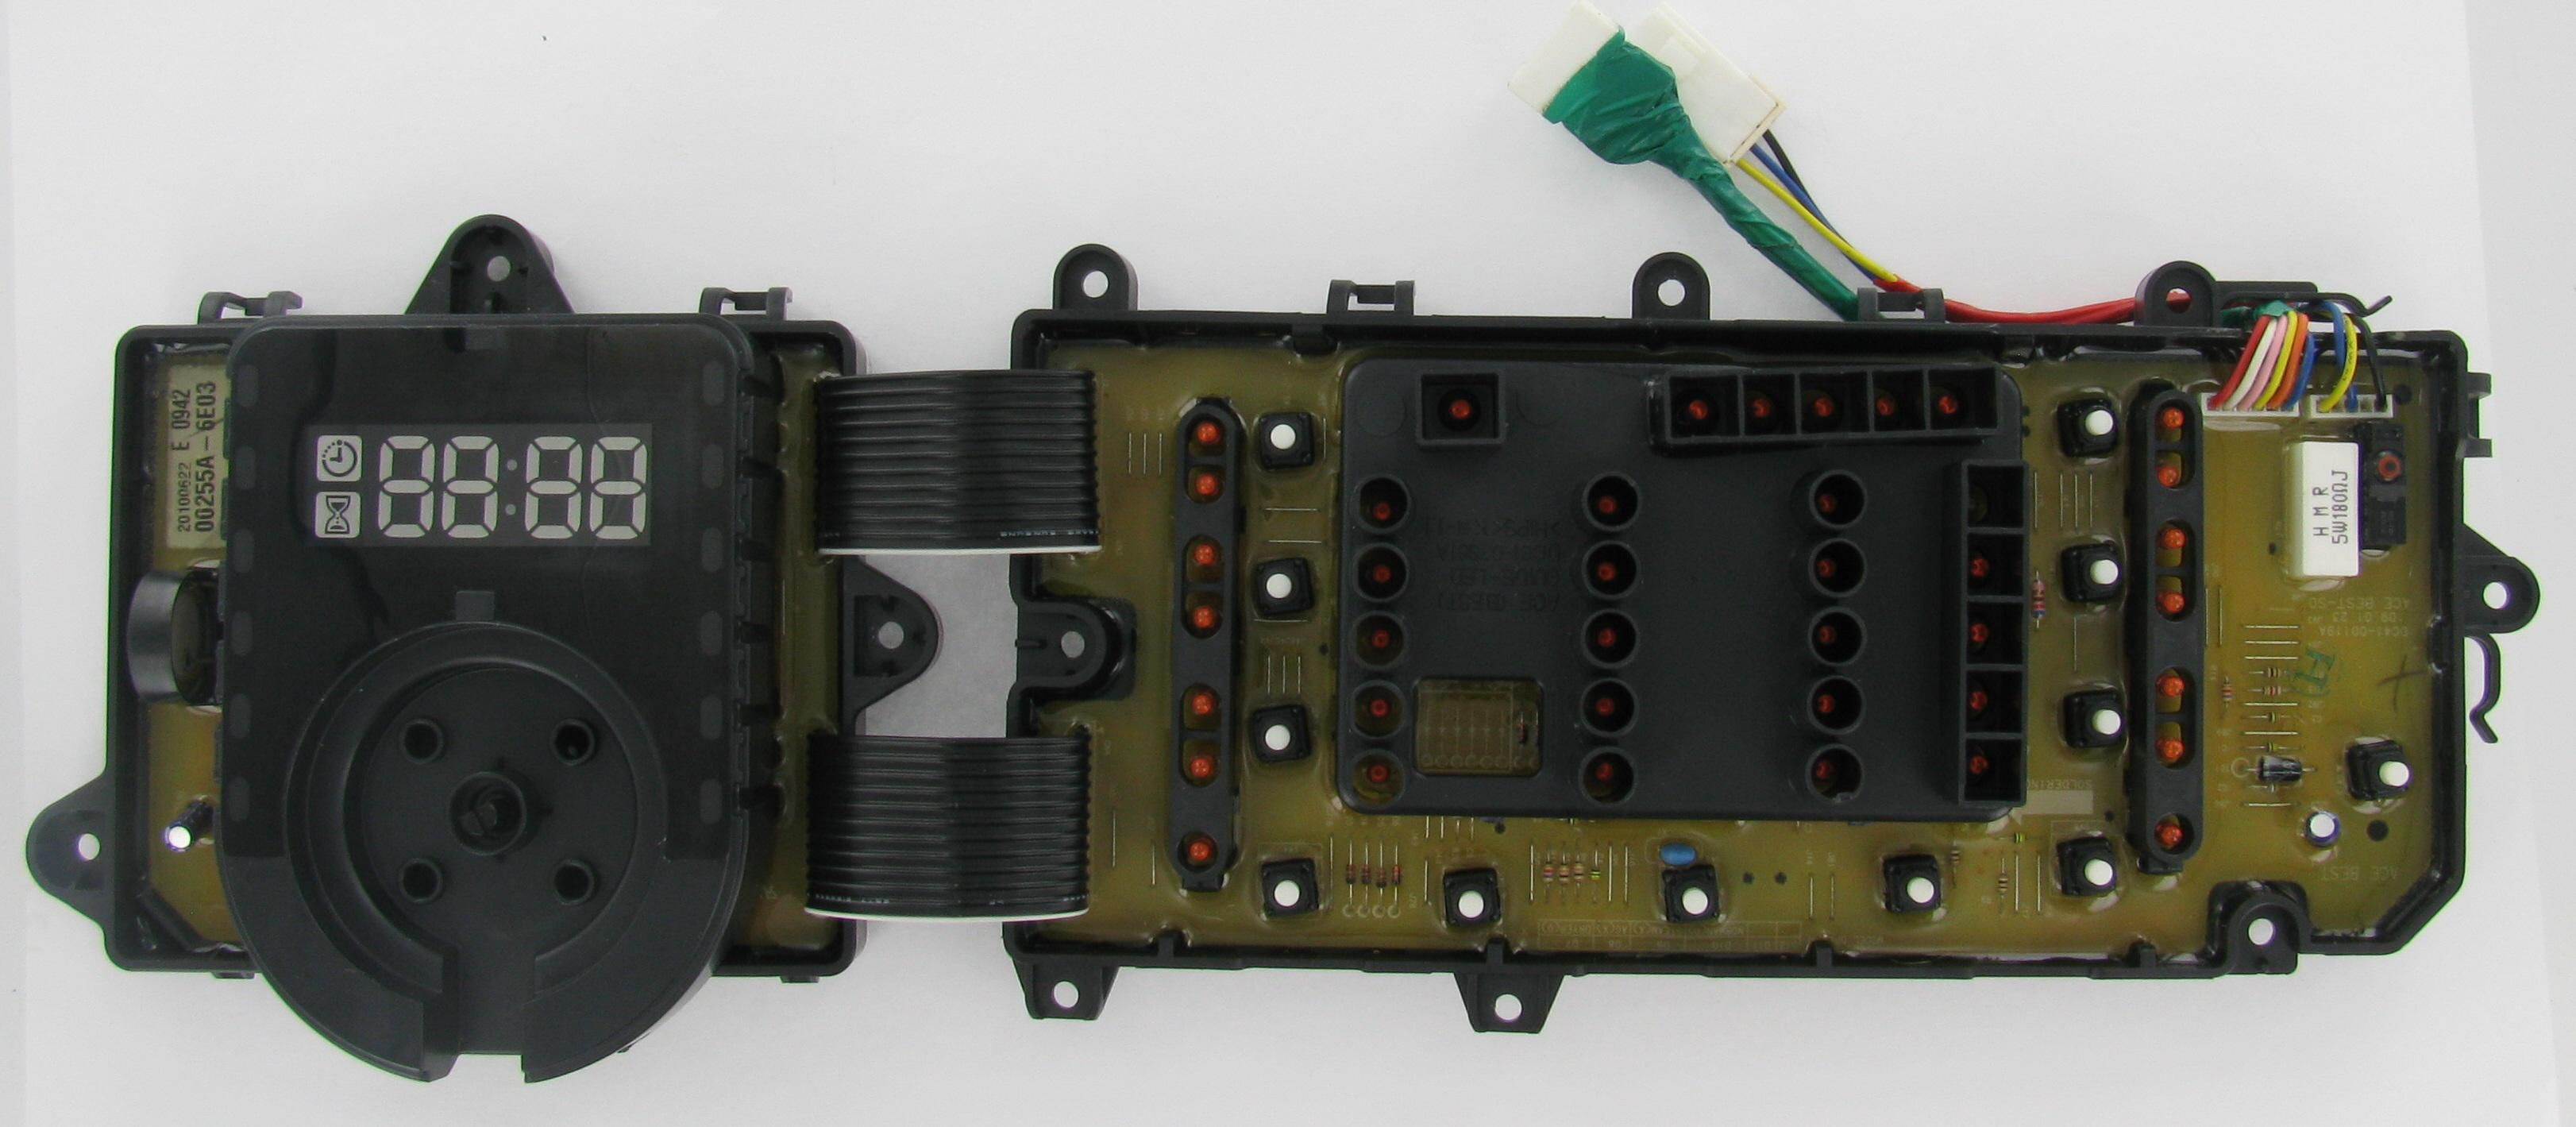 Samsung Dc92 00255a Laundry Washer Pcb Assembly Board Washer Laundry Broken Appliance Washer